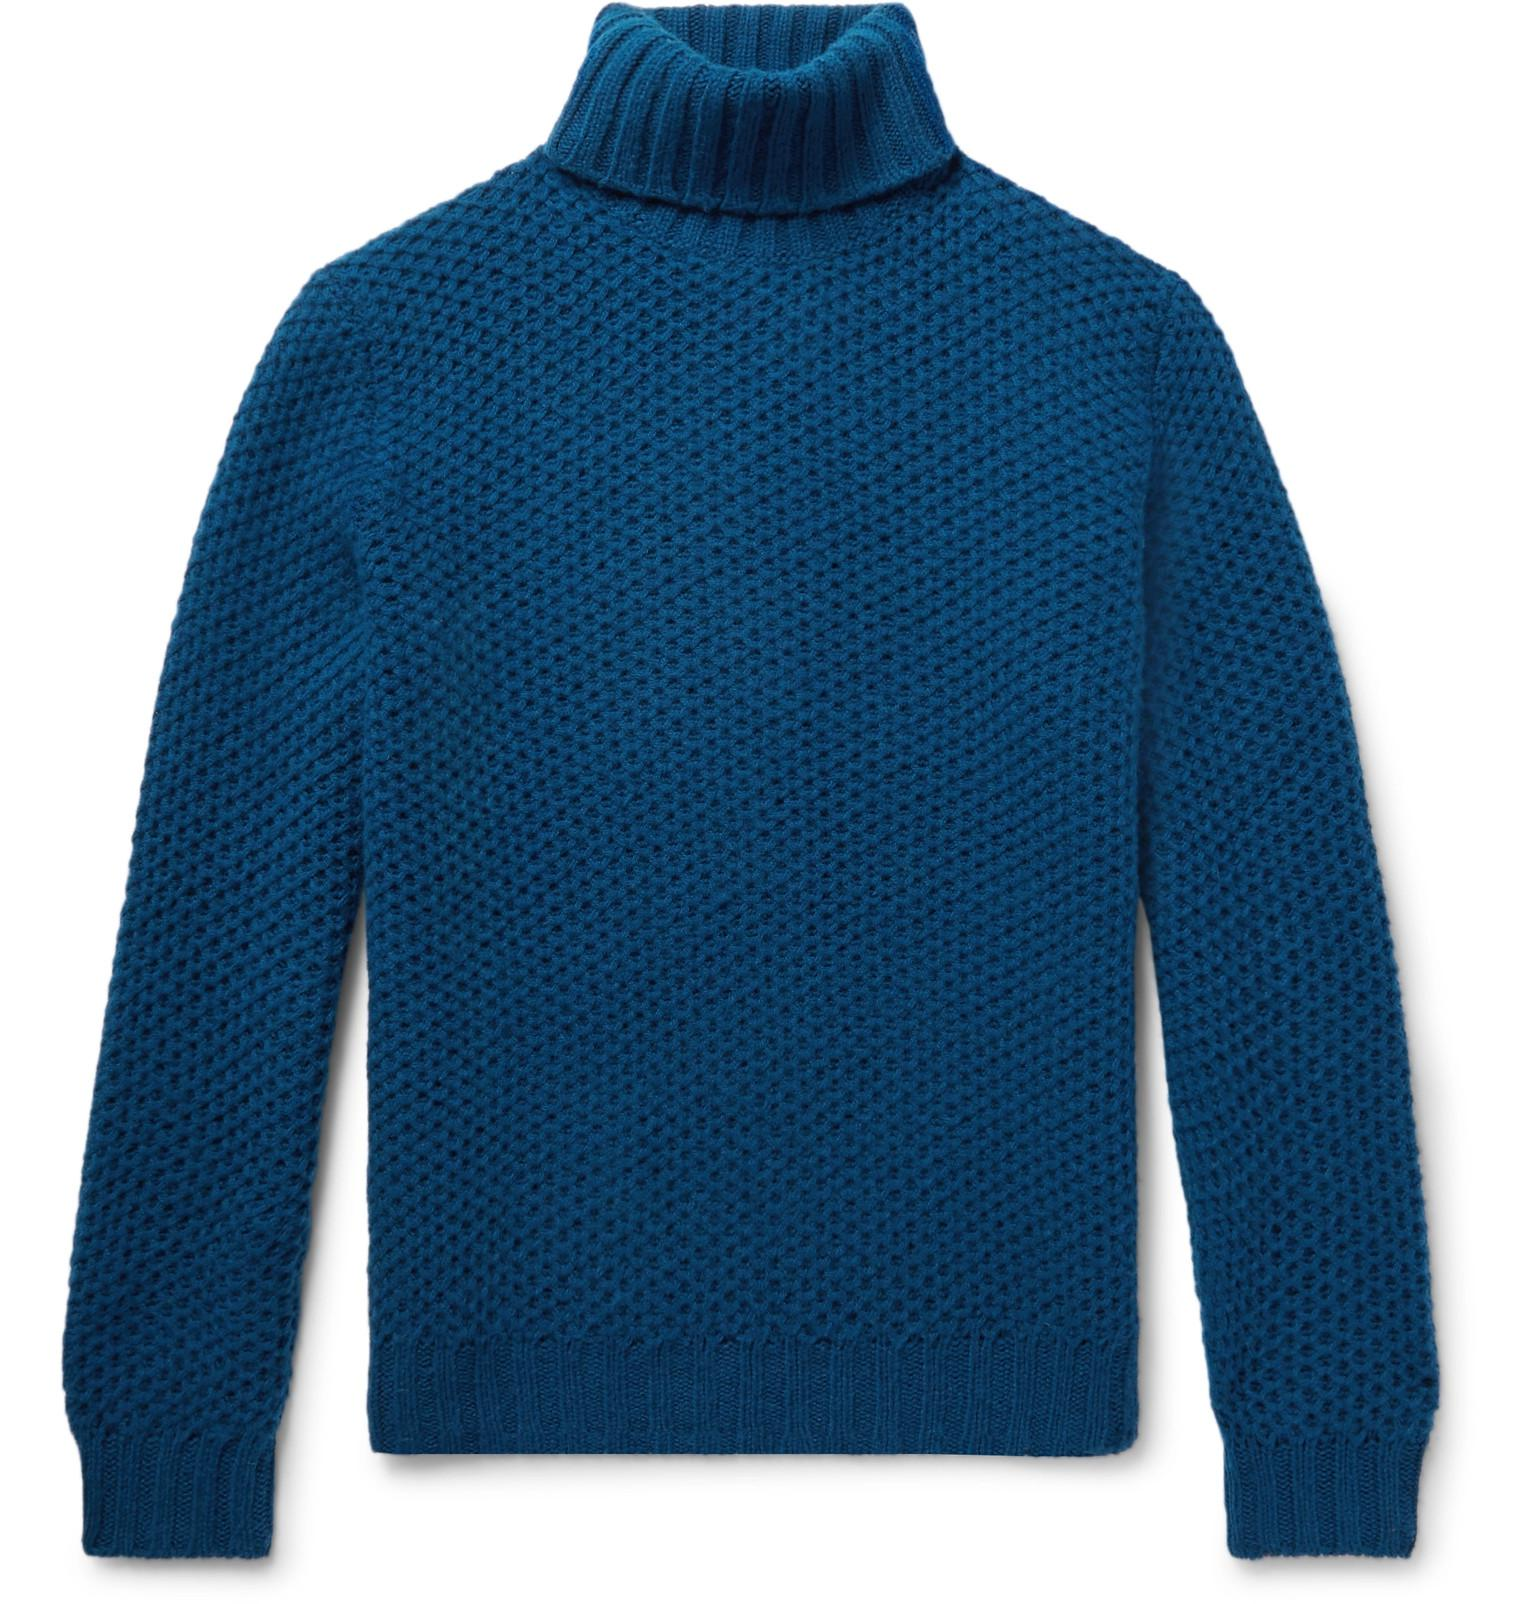 KNITWEAR - Jumpers MP Massimo Piombo Discount View Clearance Fashionable Outlet Clearance Sale 2018 Newest qHnra